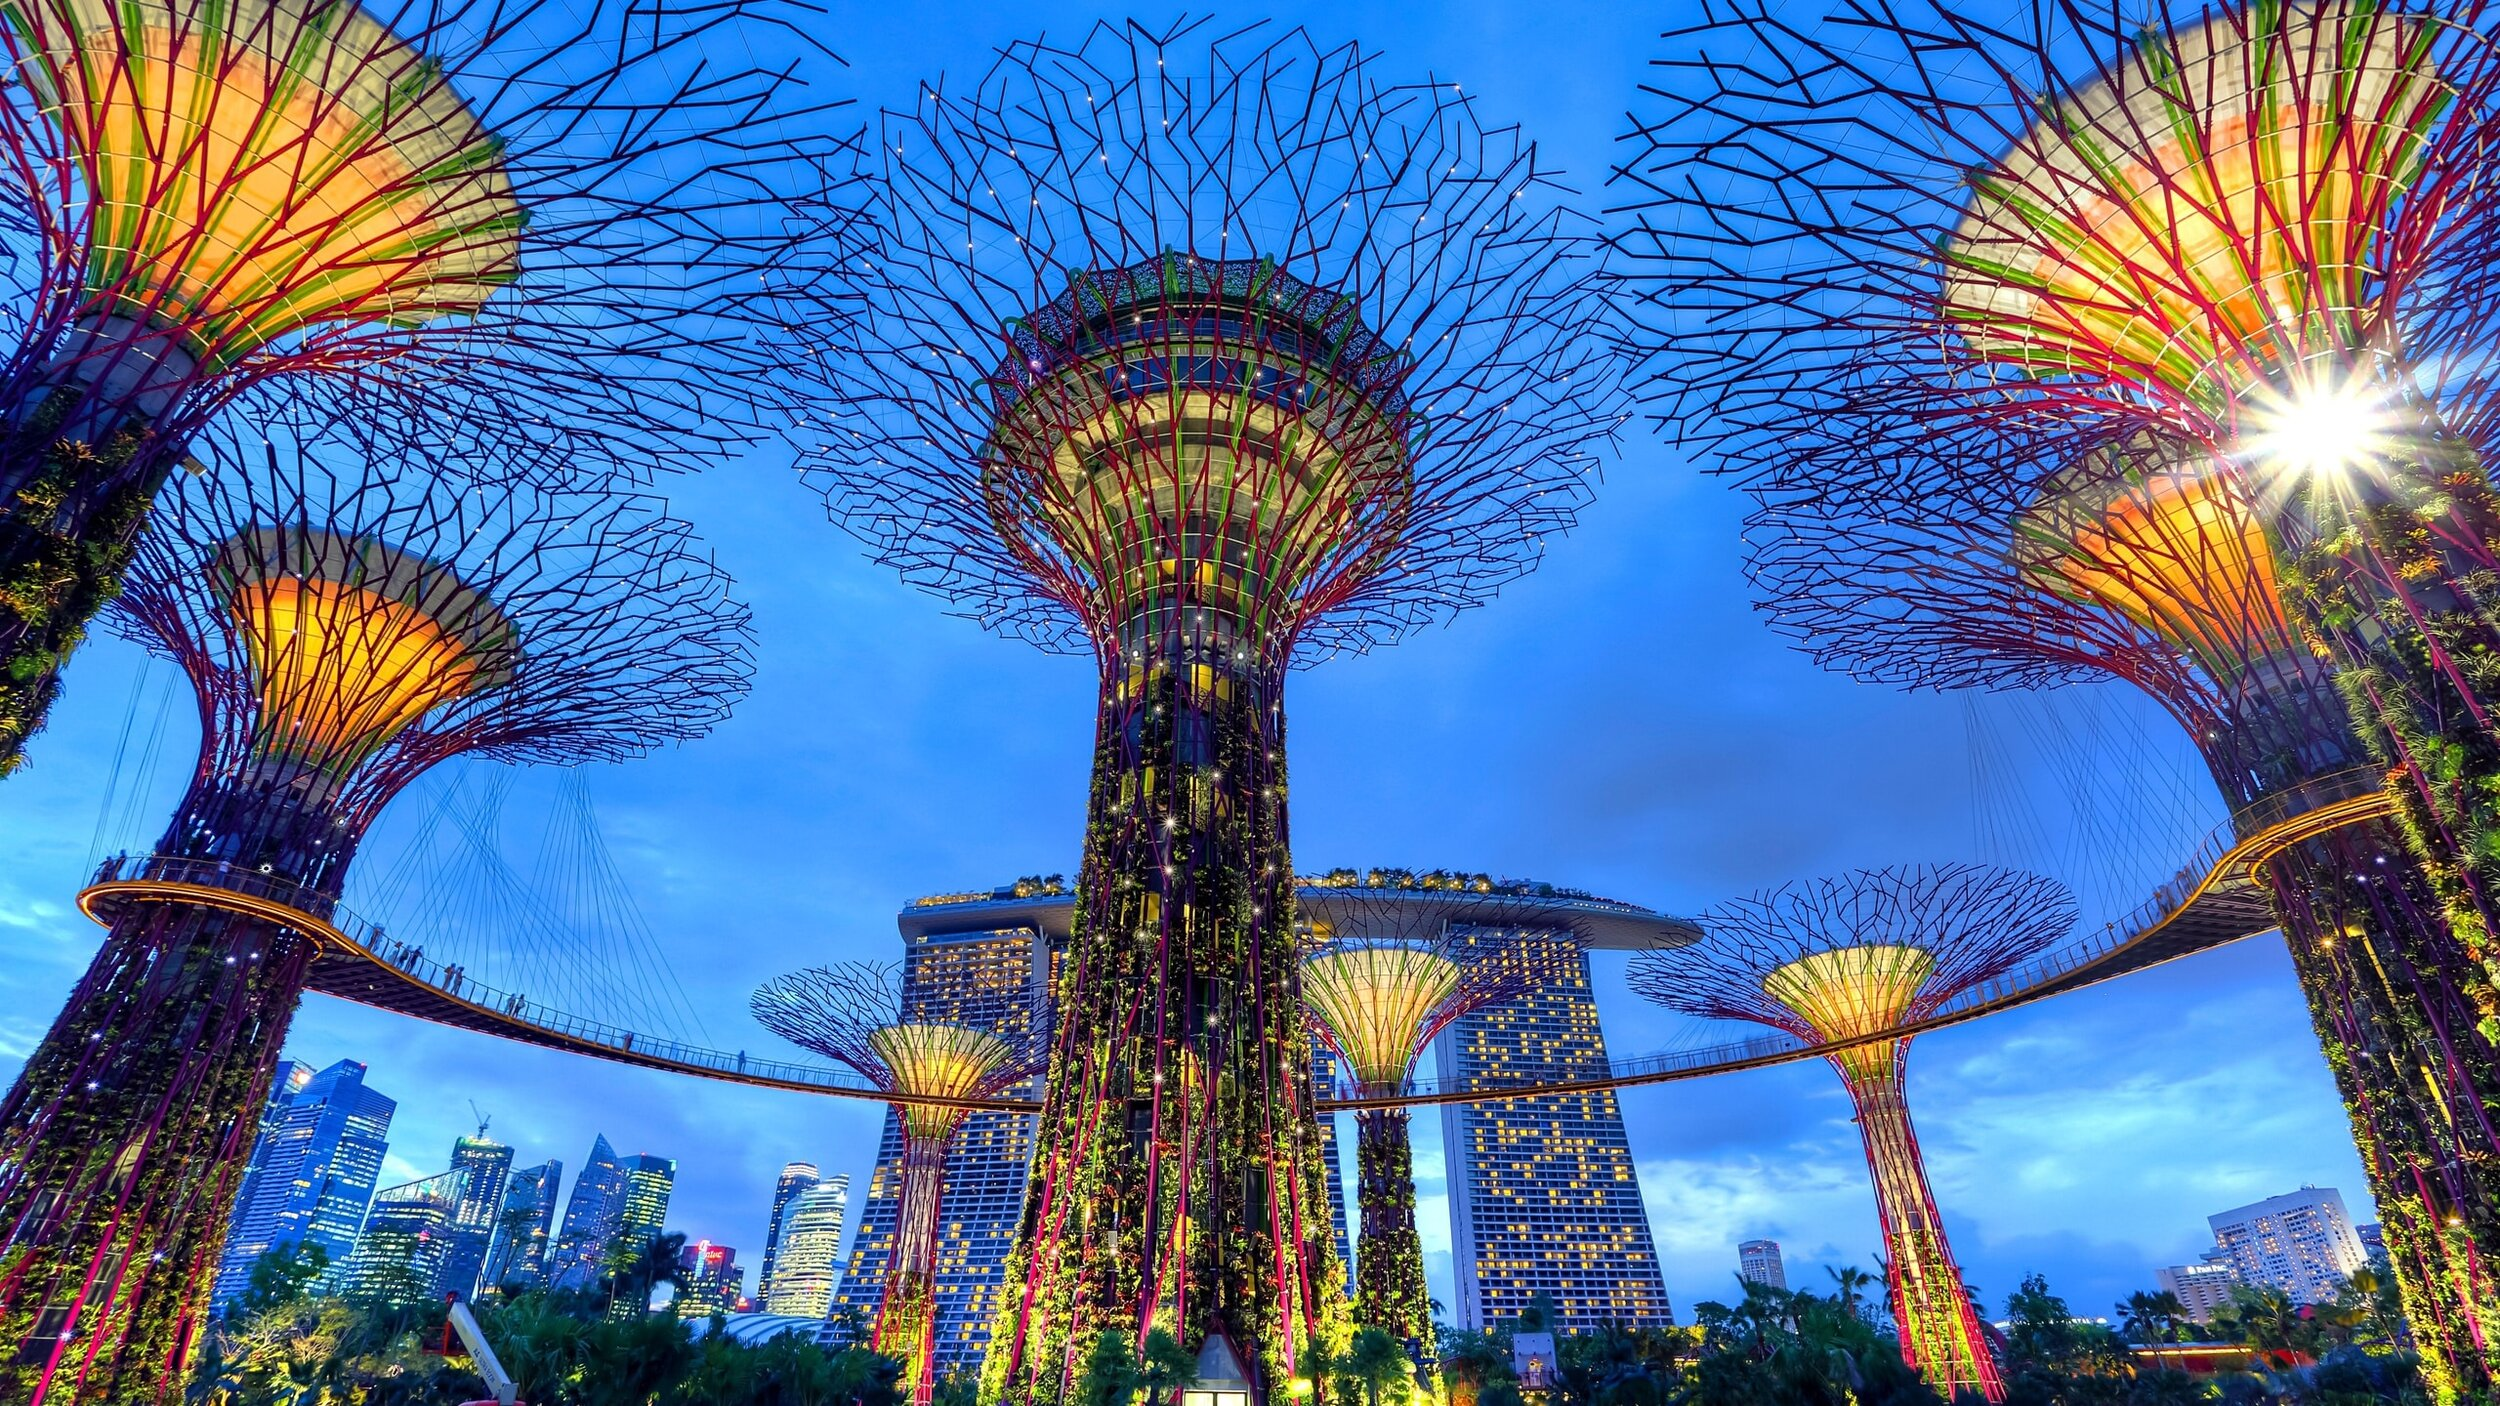 Supertree Grove at Singapore's Gardens by the Bay